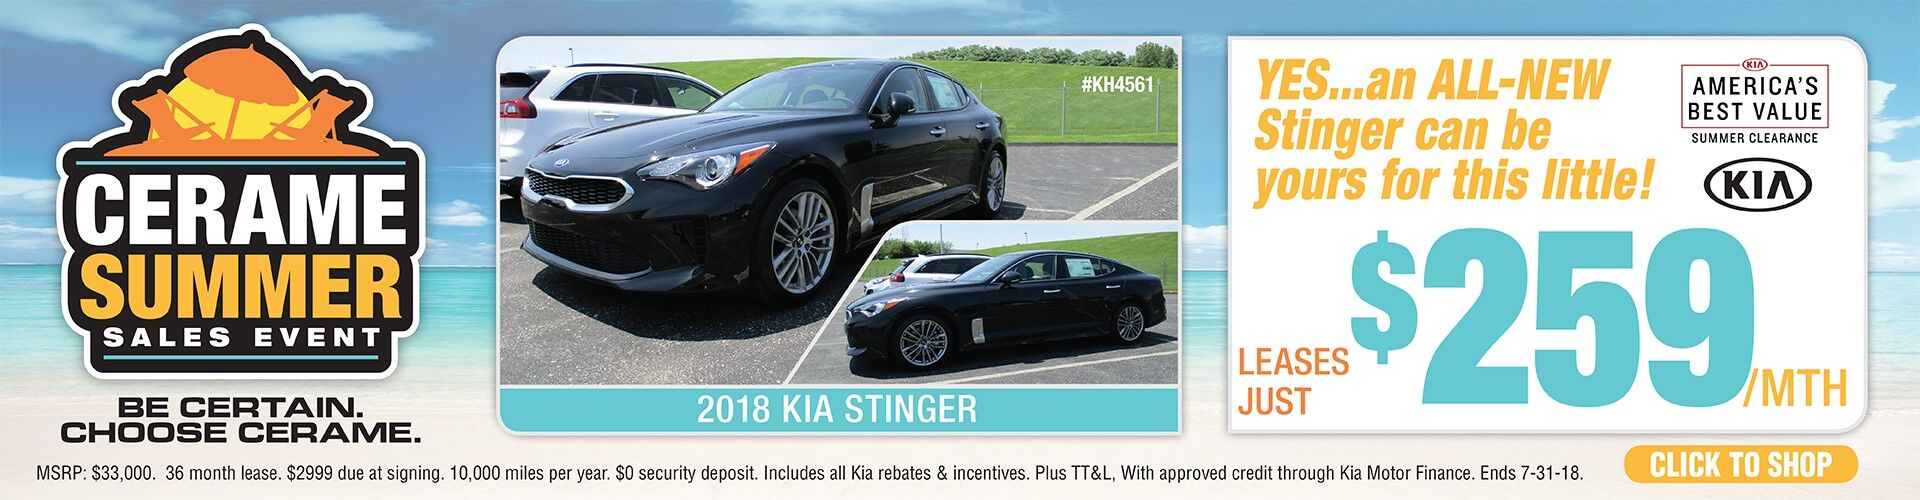 New Kia Stinger is here at the dealership!